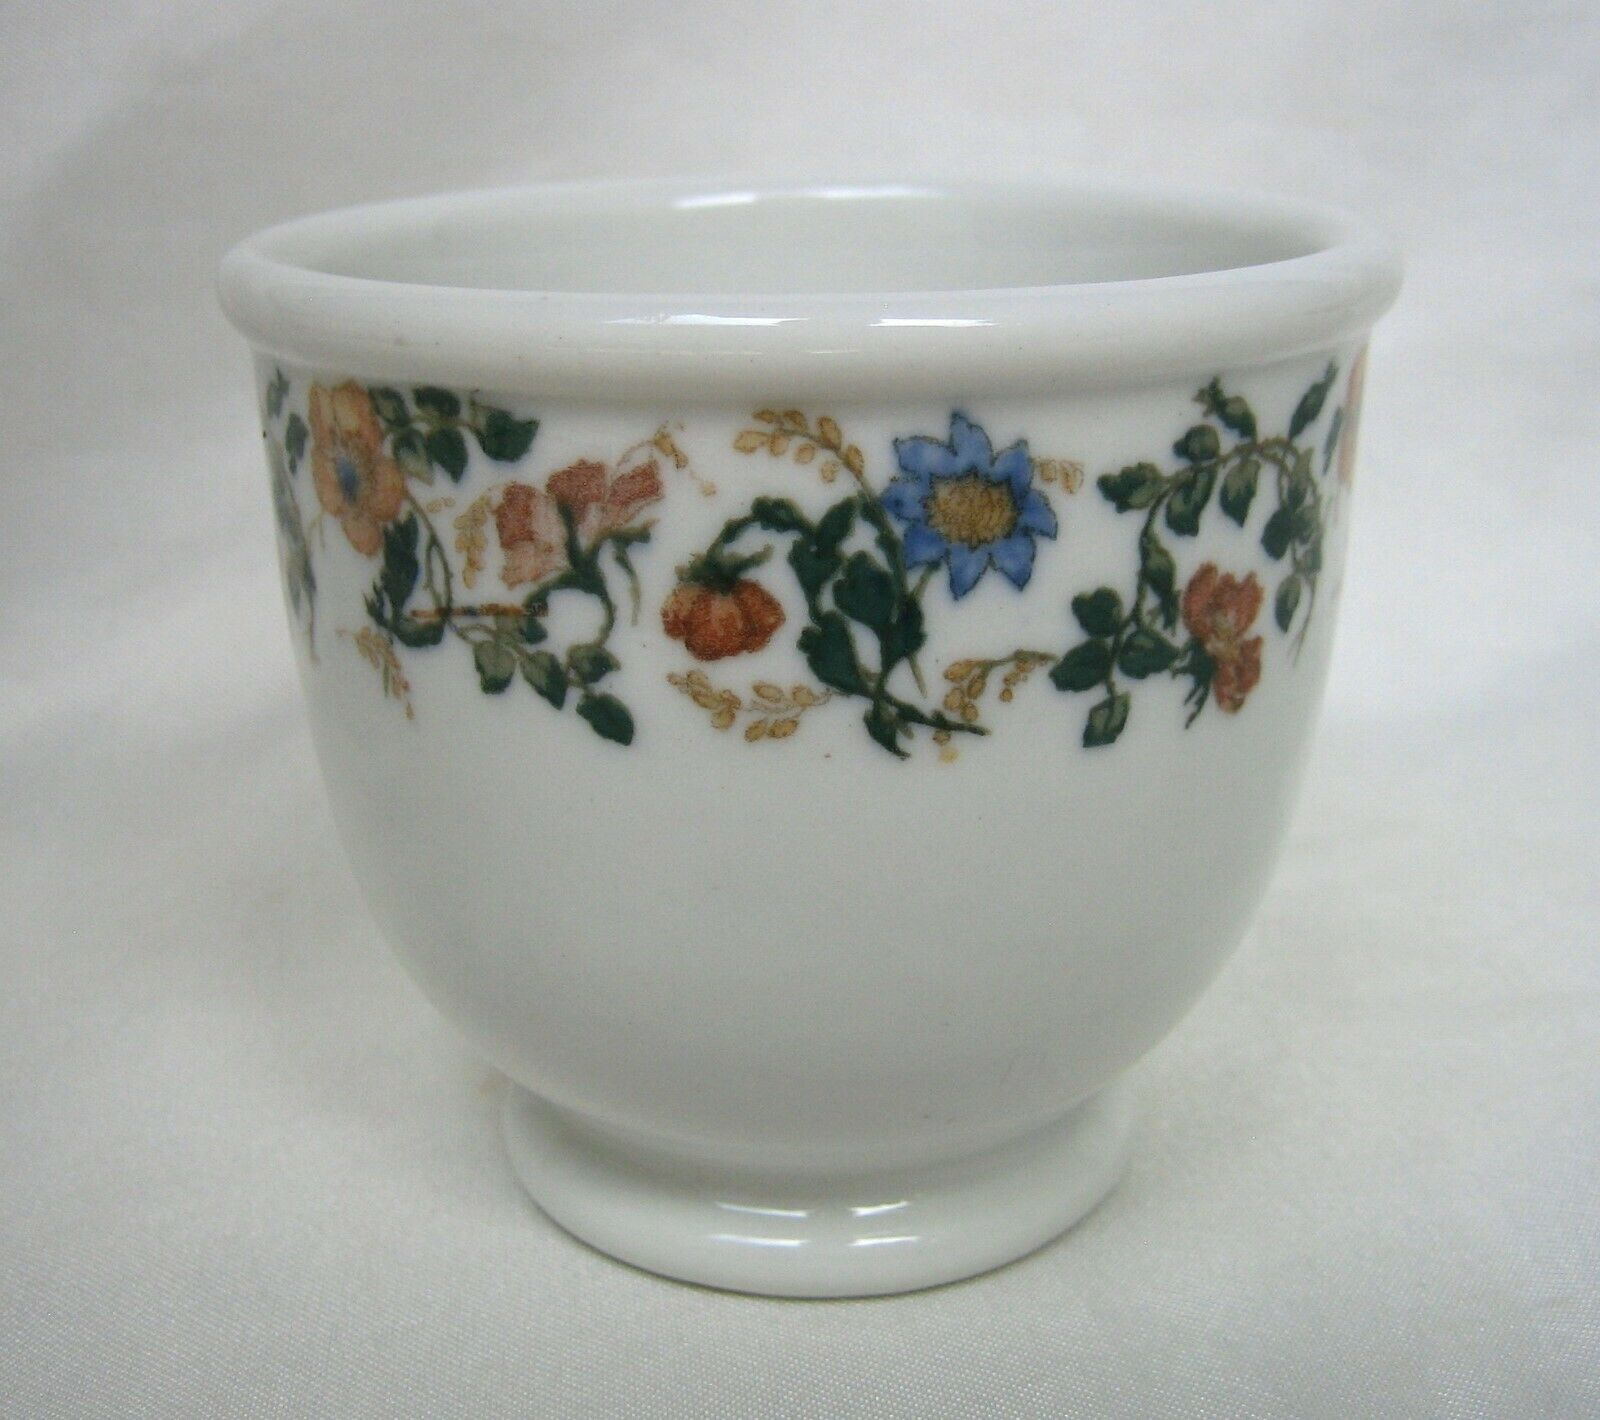 Lamberton China Scammell Restaurant Ware Custard Cup with Flowers